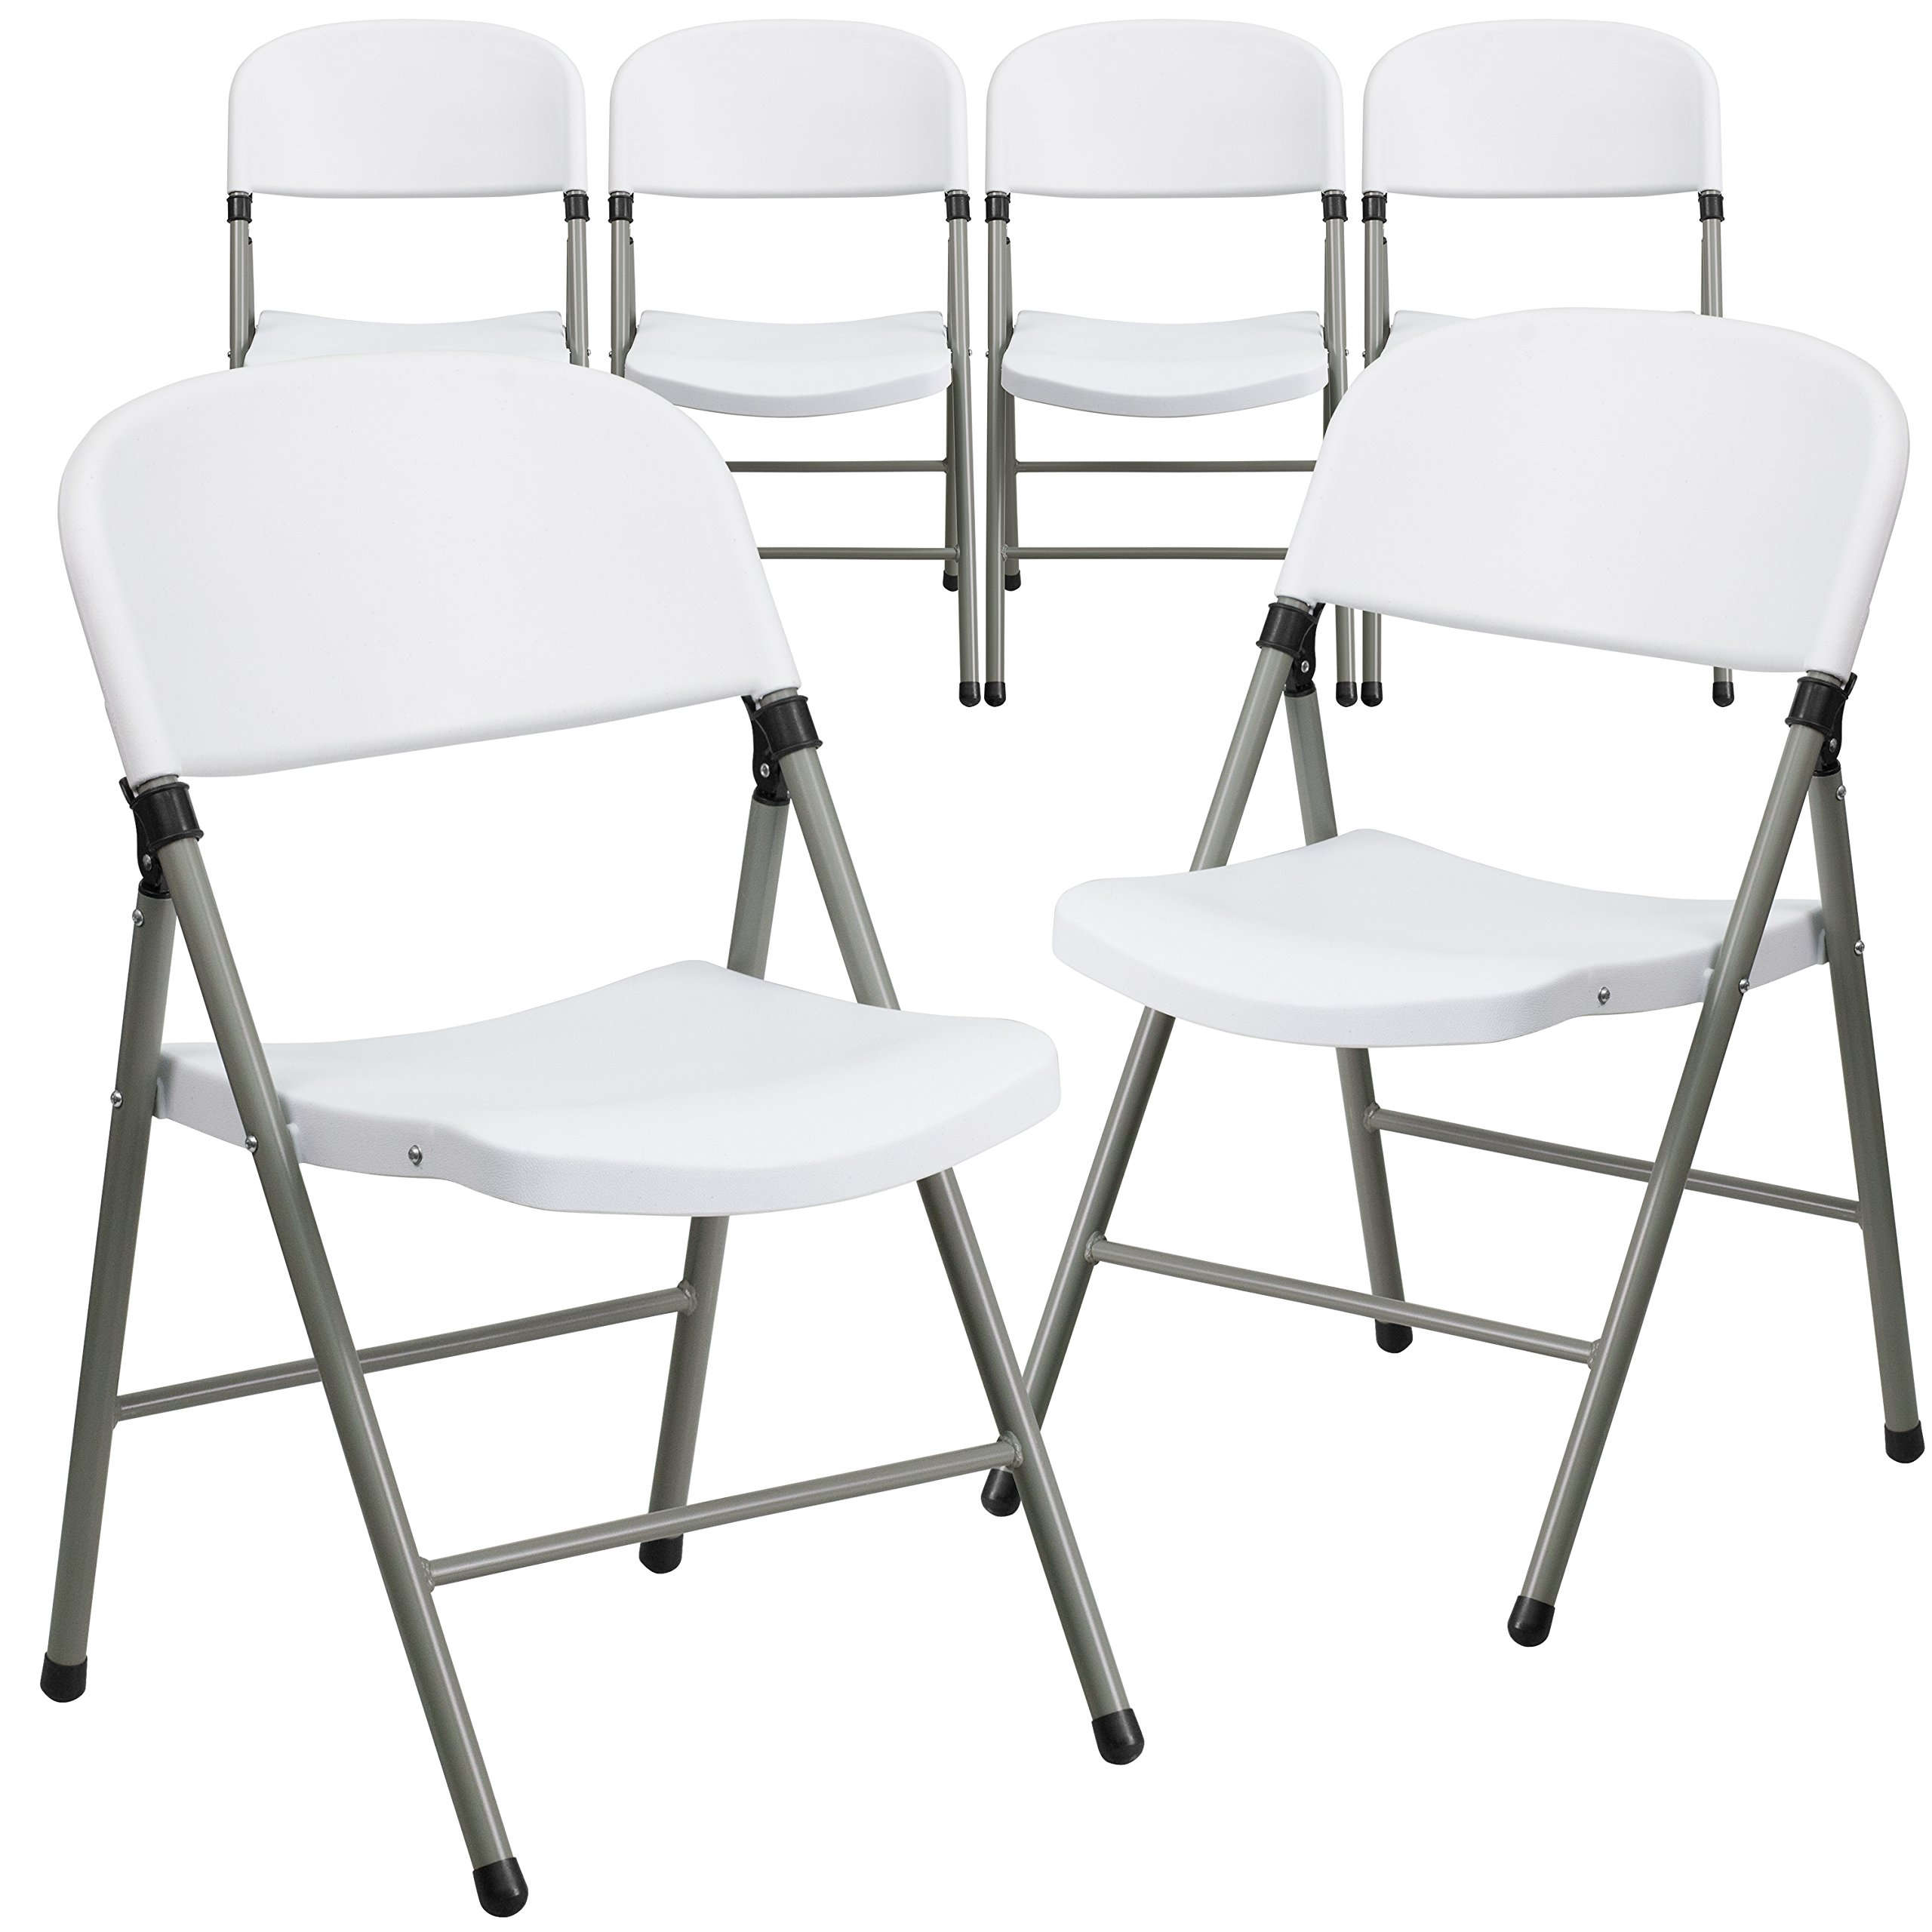 Flash Furniture 6 Pk. HERCULES Series 330 lb. Capacity White Plastic Folding Chair with Gray Frame by Flash Furniture